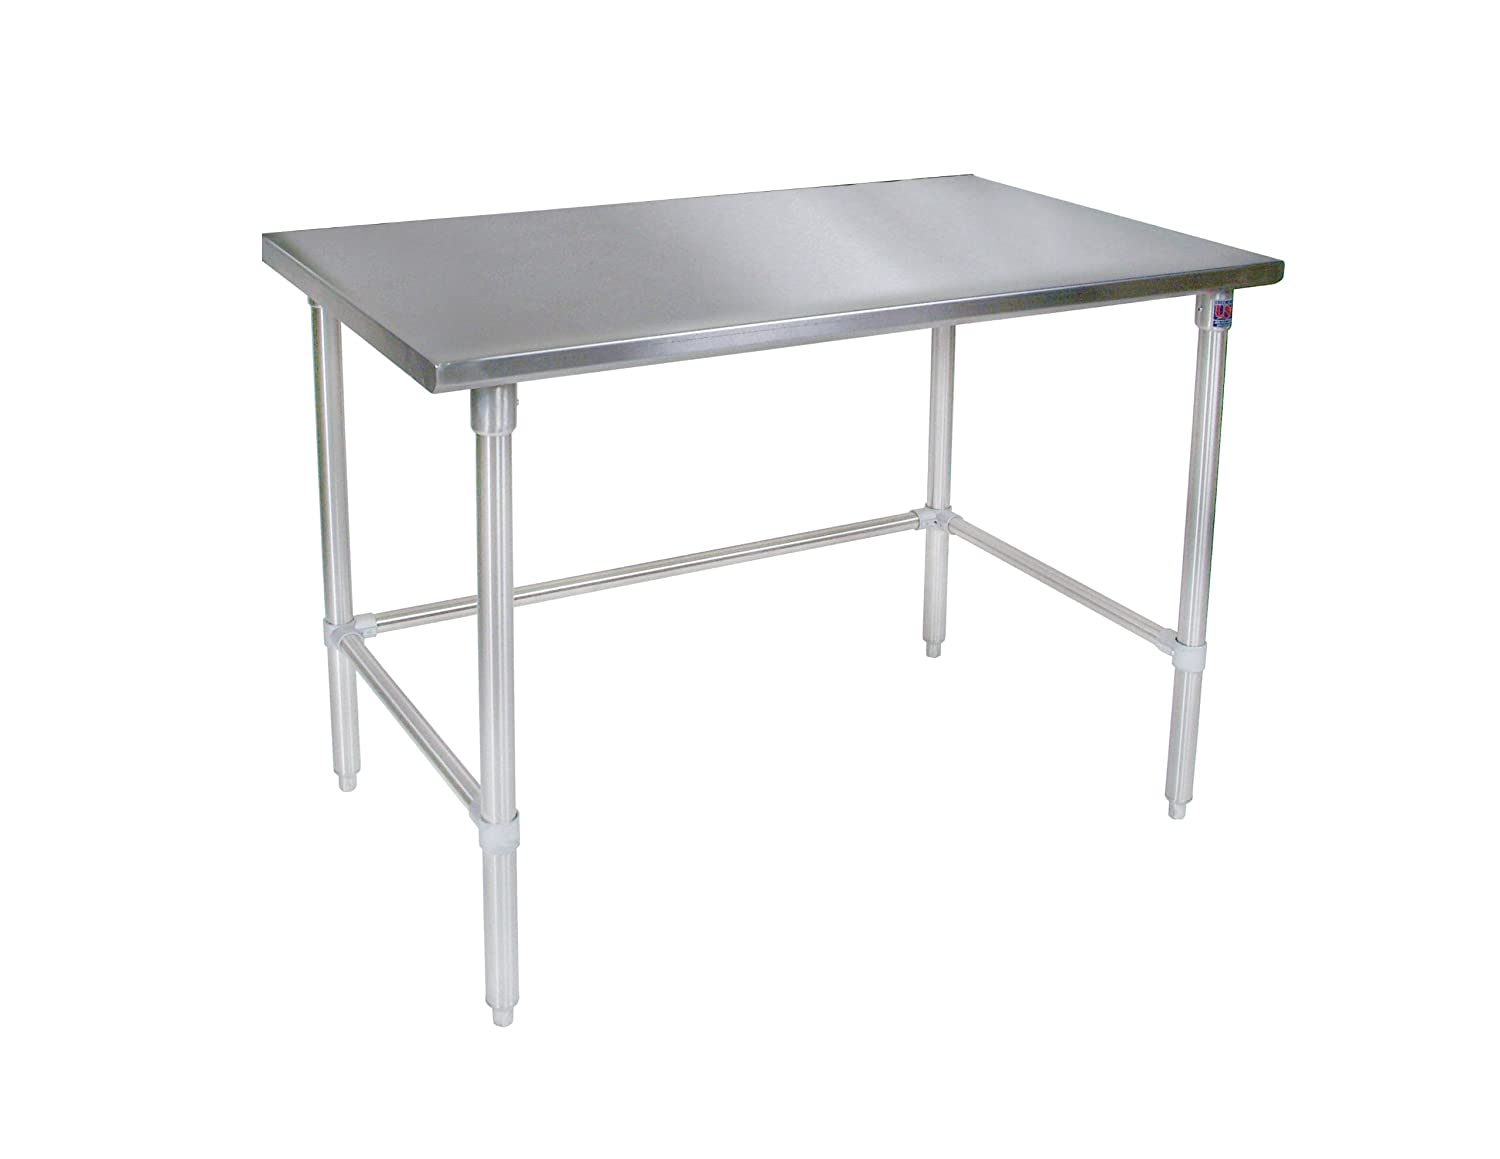 John Boos ST6-3648SSK 16 gauge Stainless Steel Work Table with Stainless Steel Base and Shelf, 48